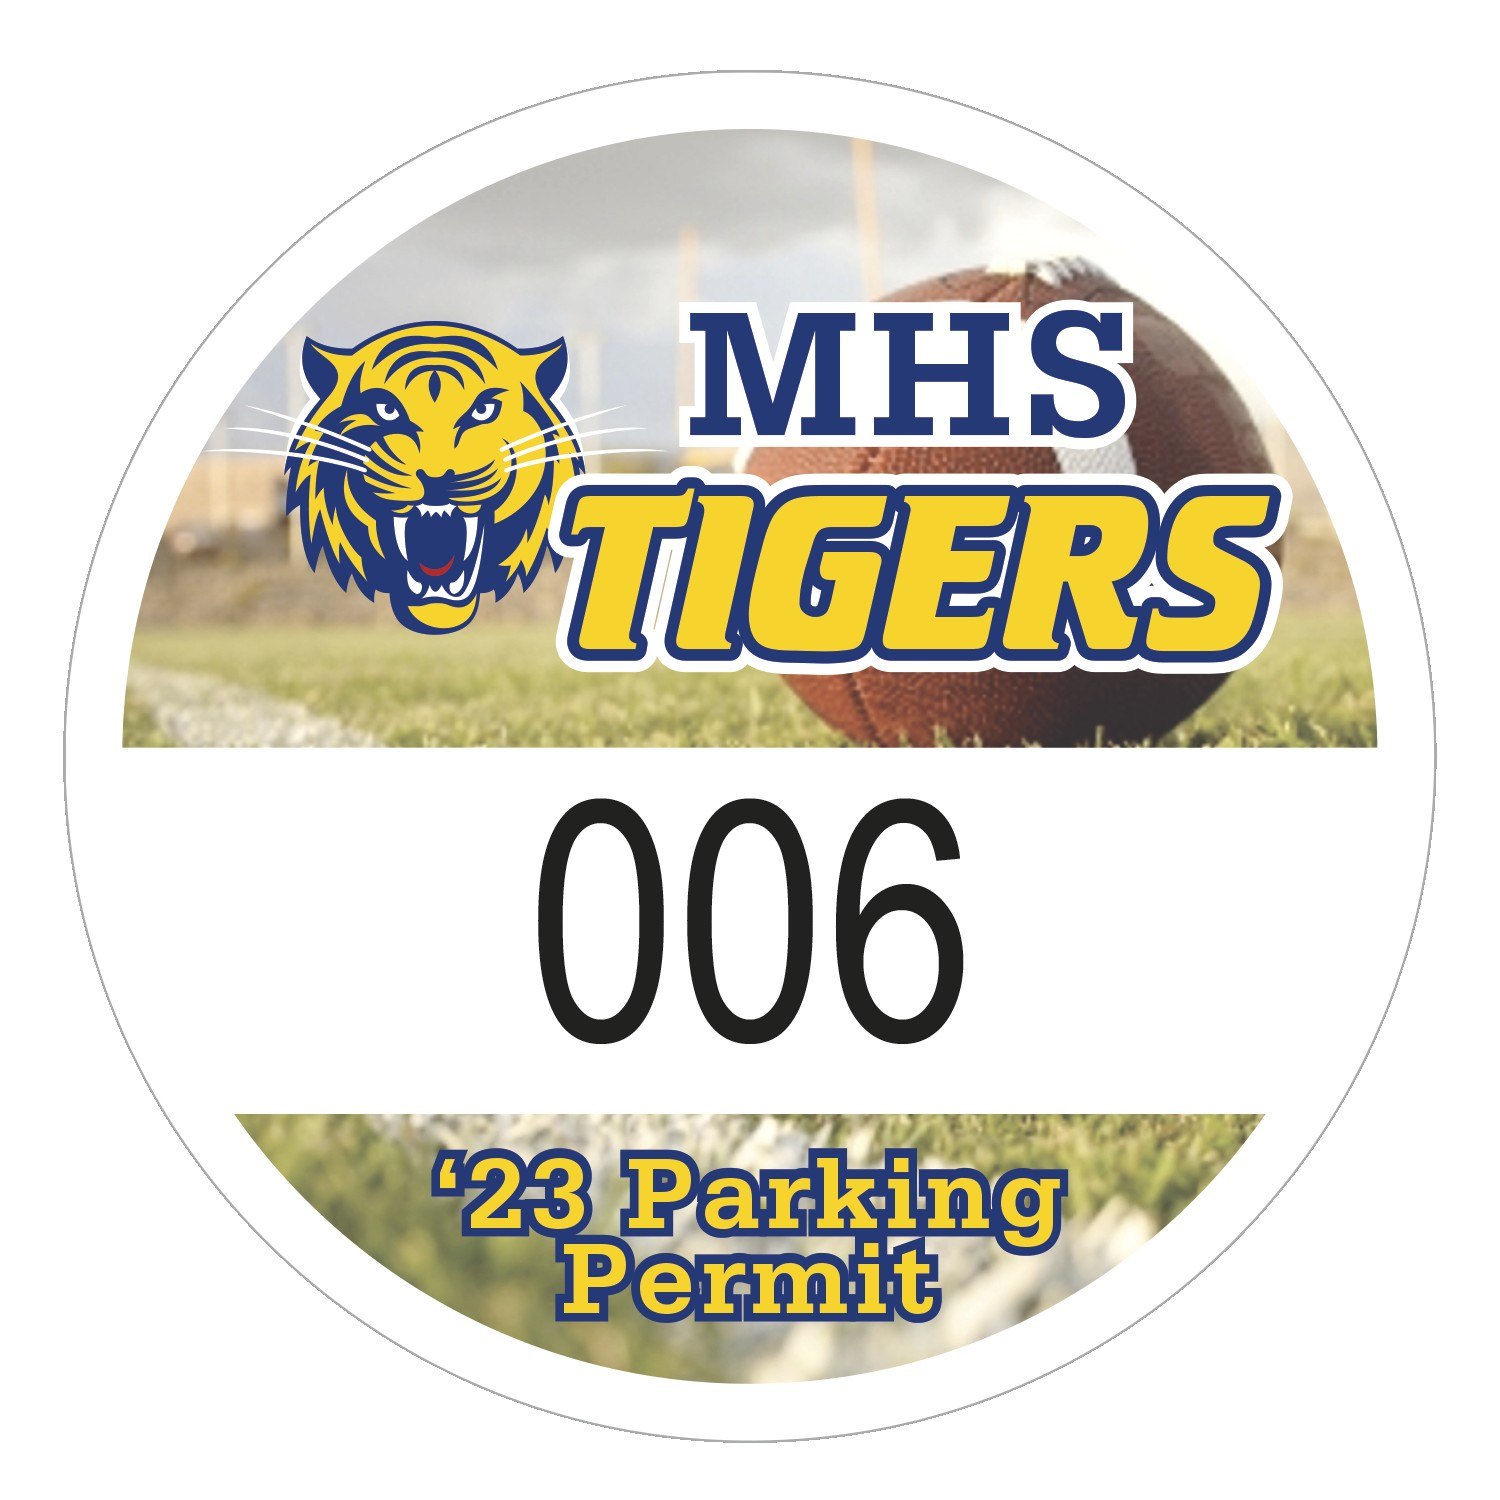 "345932495-183 - Round White Vinyl Full Color Numbered Outside Parking Permit Decal (2 1/2"" Diameter) - thumbnail"